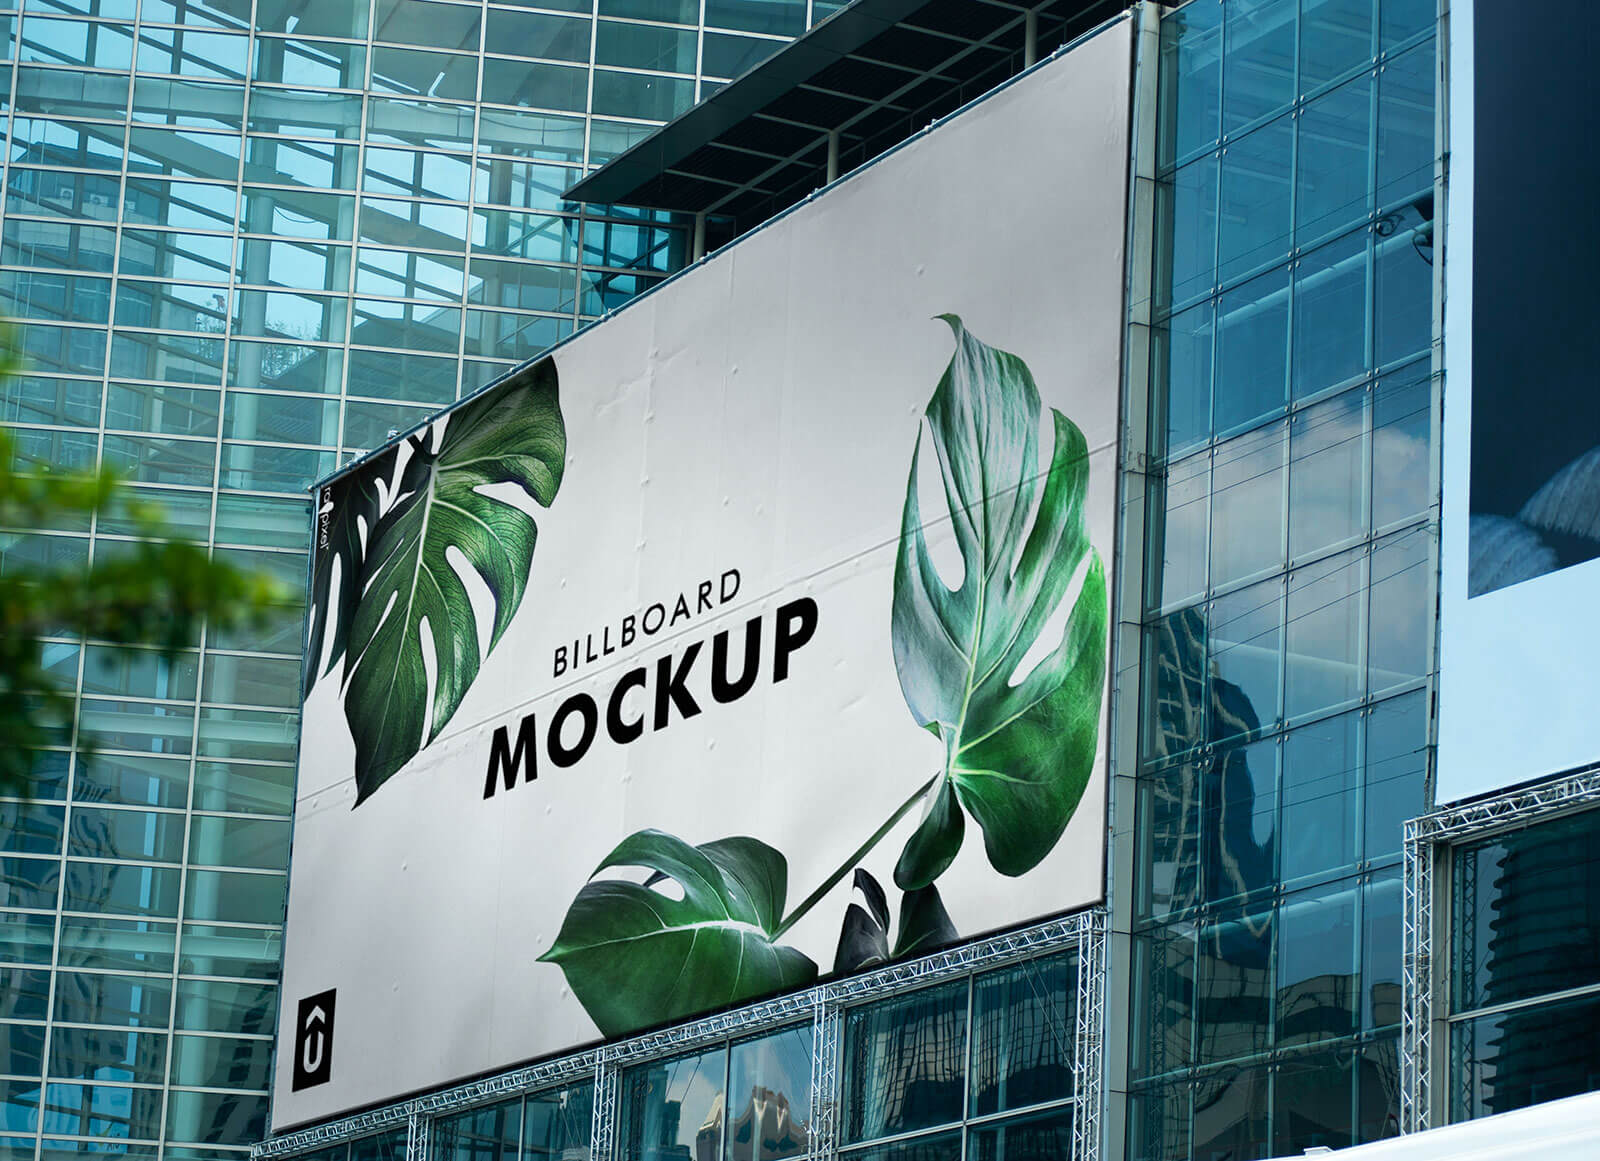 Free-Commercial-Building-Billboard-Mockup-PSD